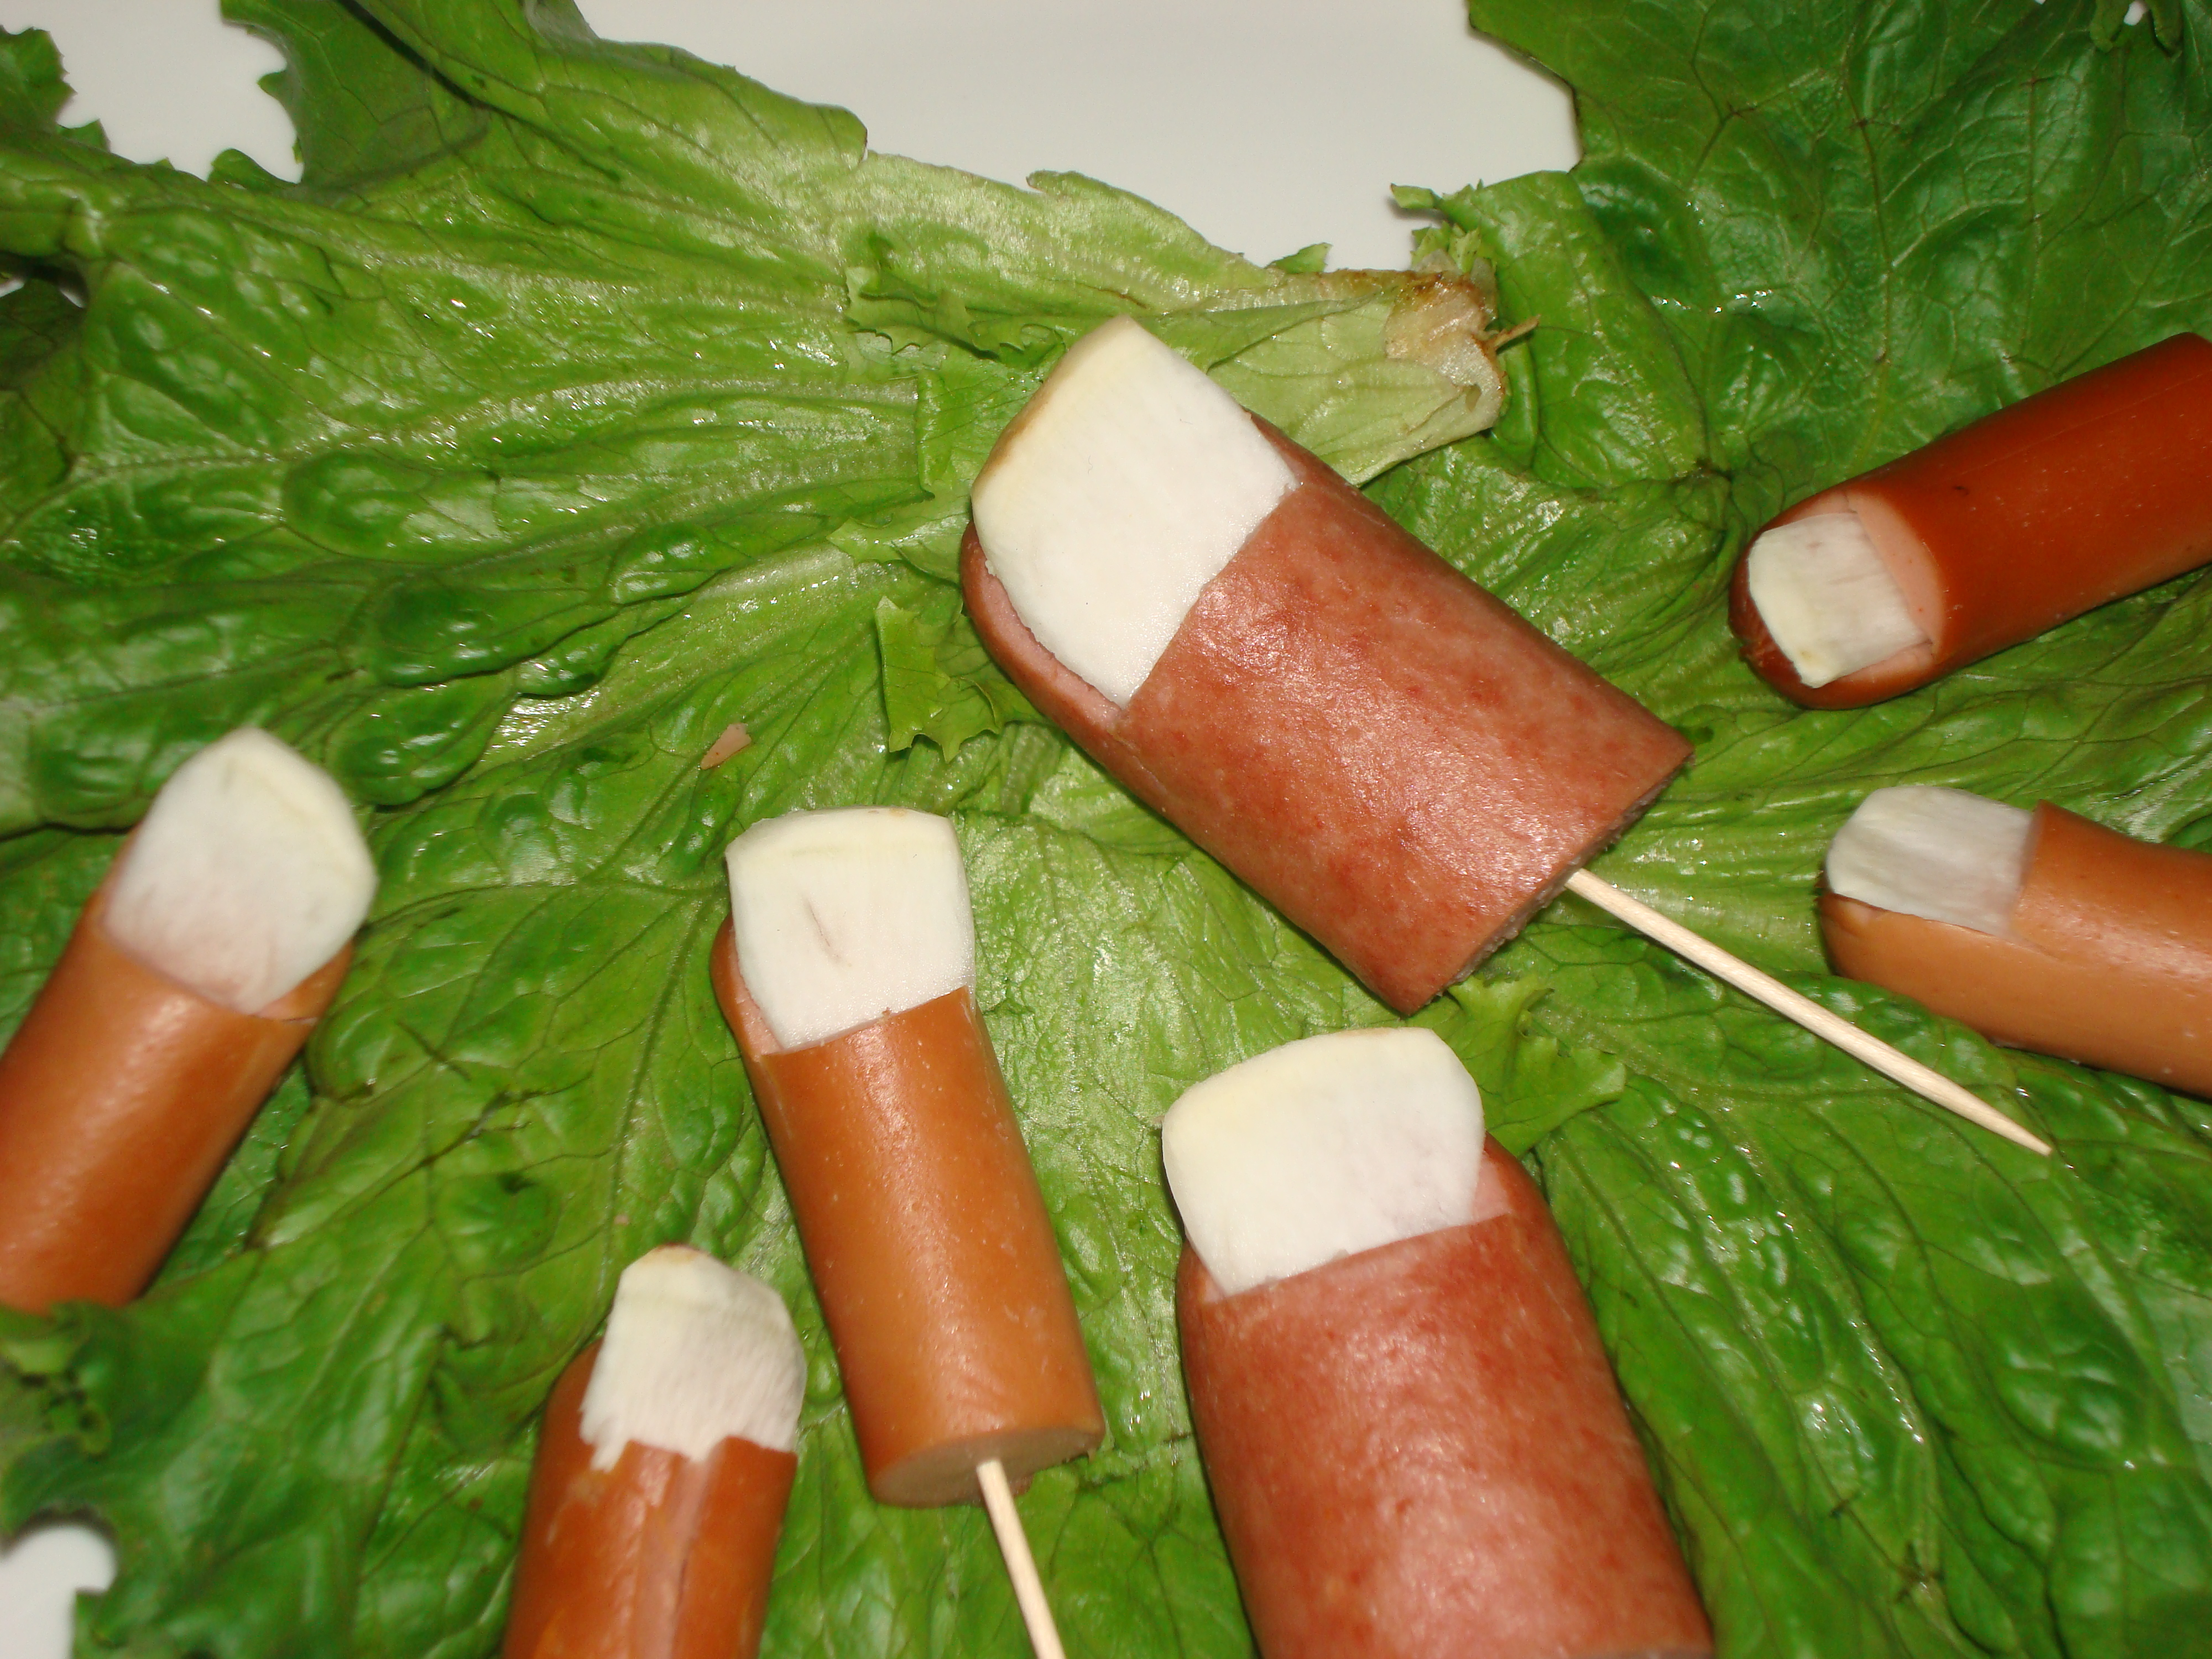 Picture of Joe's Toes ( Hot Dogs on a Stick)